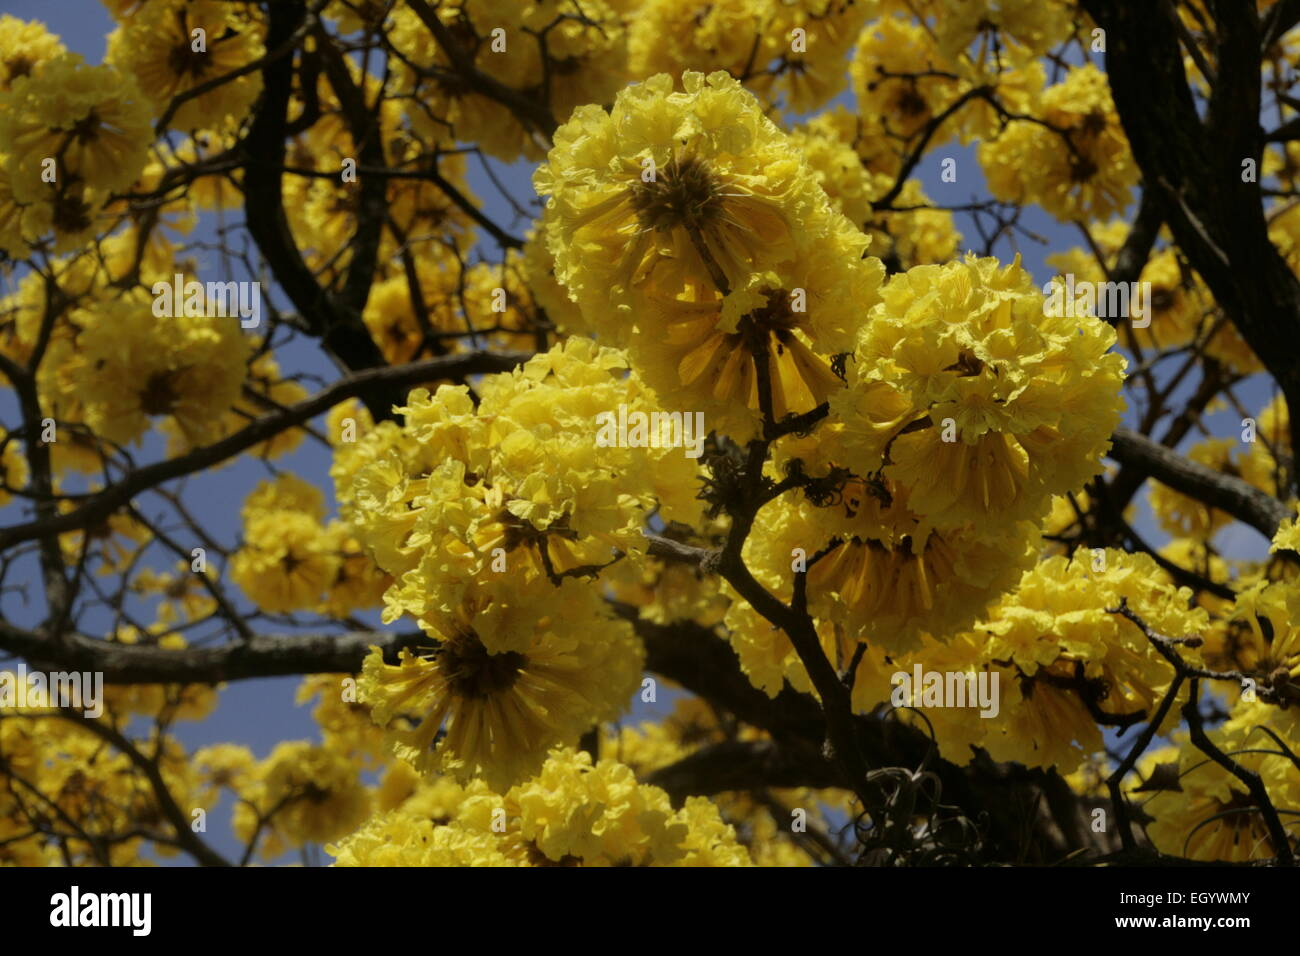 Stunning yellow Cortez tree in full bloom outside the church in Grecia, Costa Rica - Stock Image